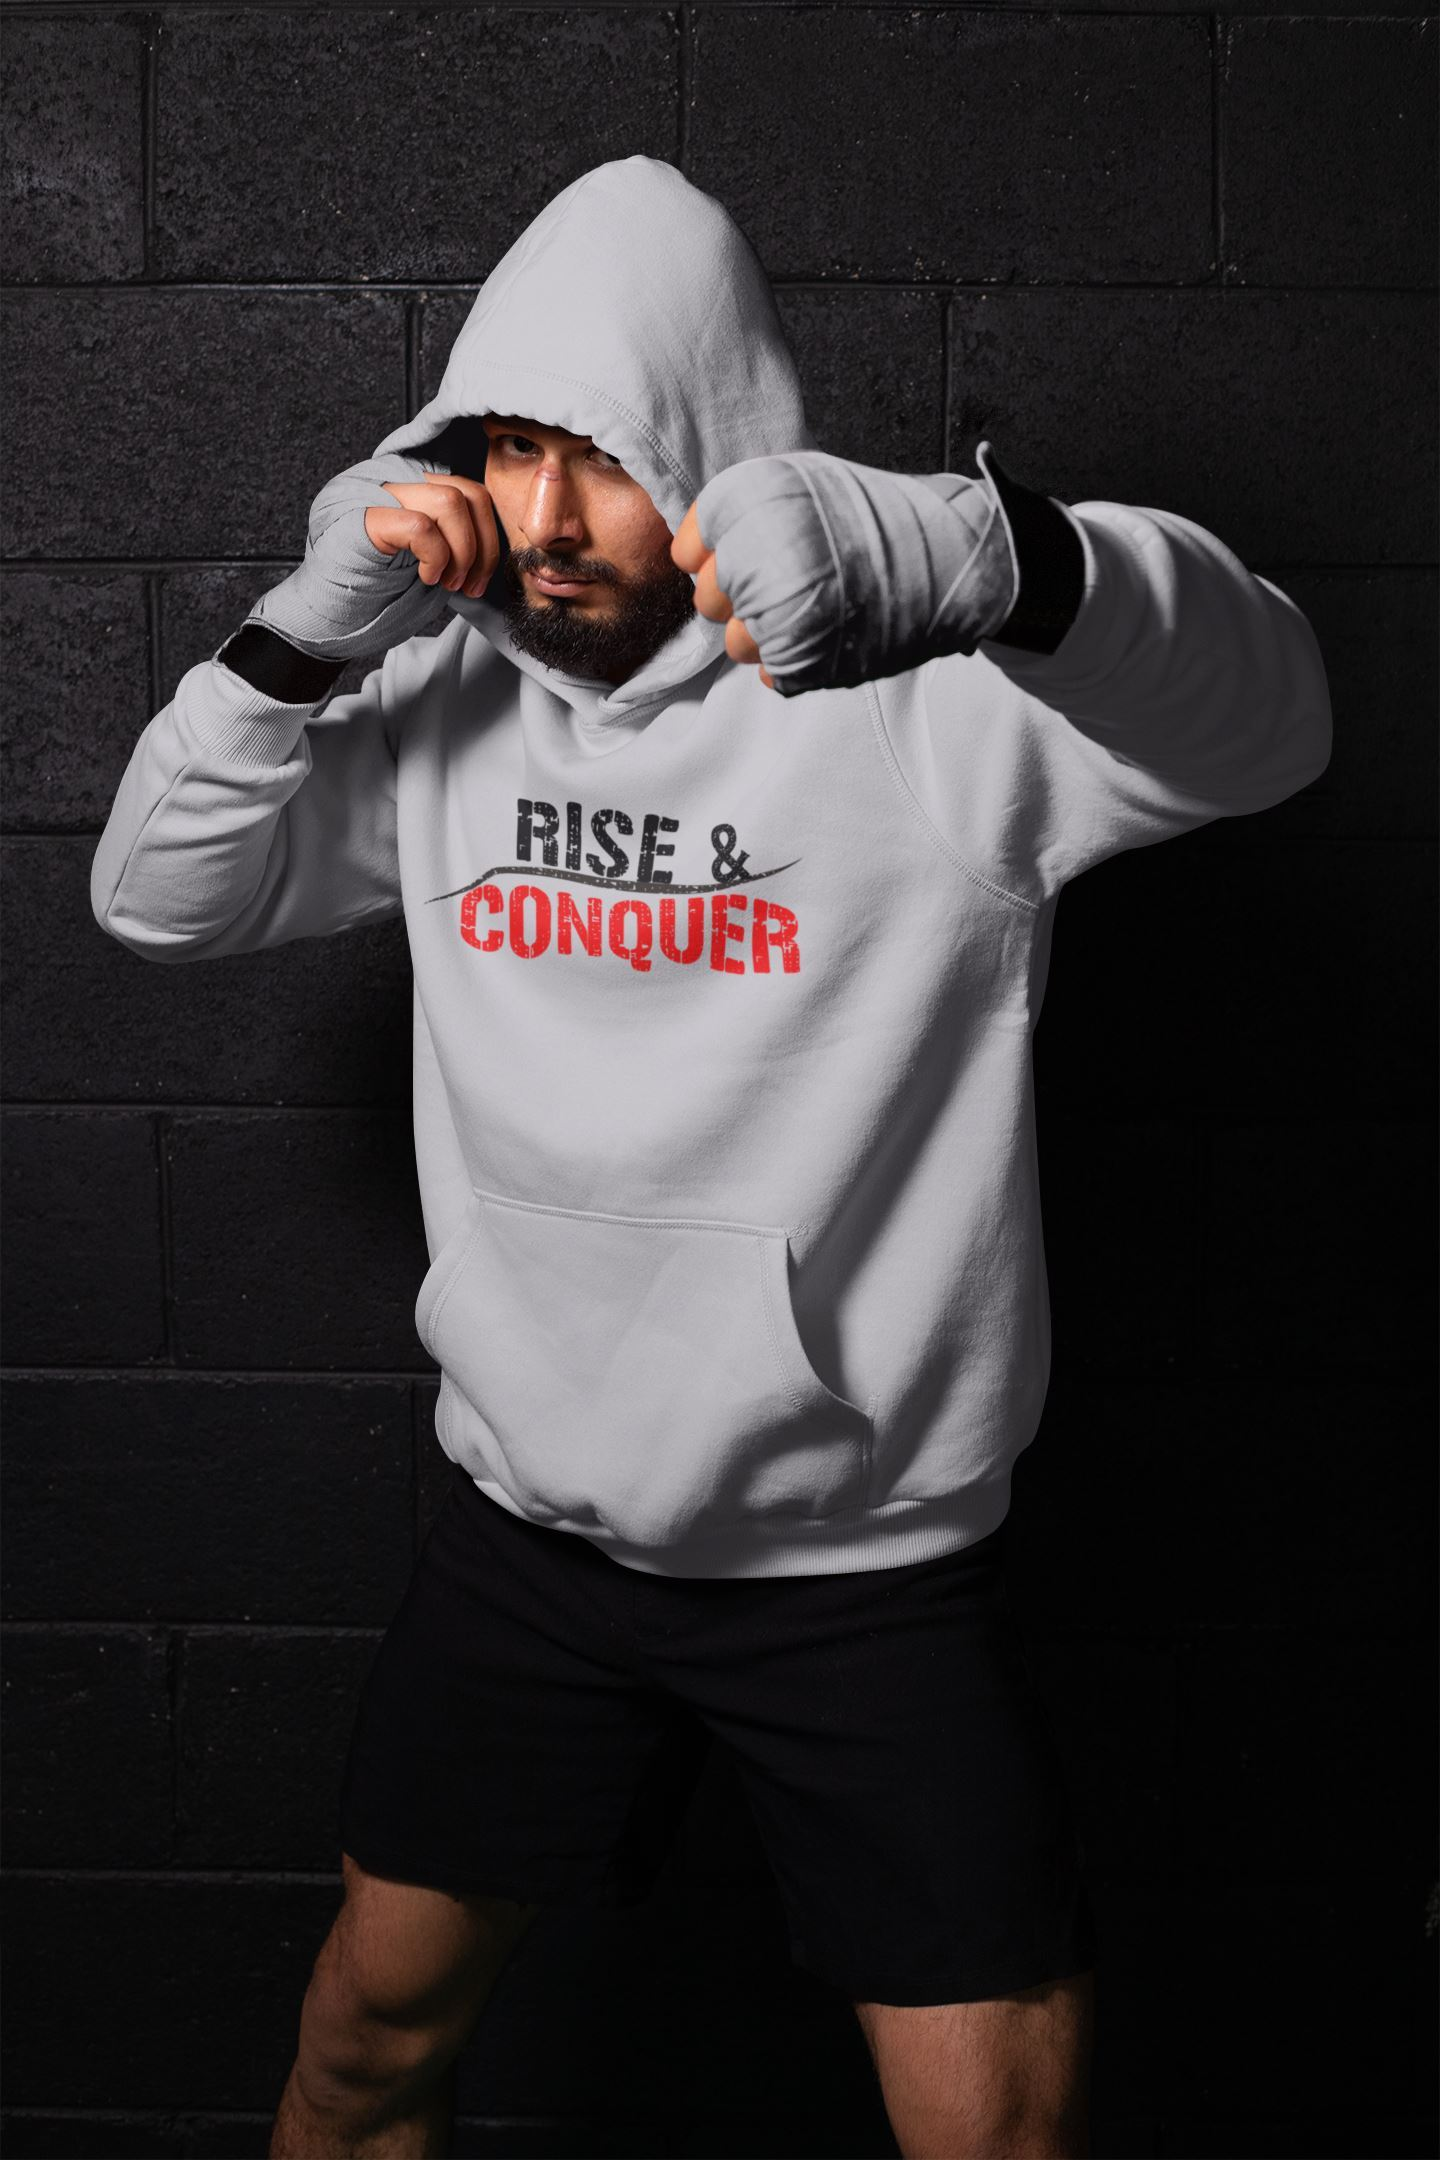 Rise& Conquer HoodieHoodieEntrepreneurKing.coM motivational quotes entrepreneur inspirational quotes